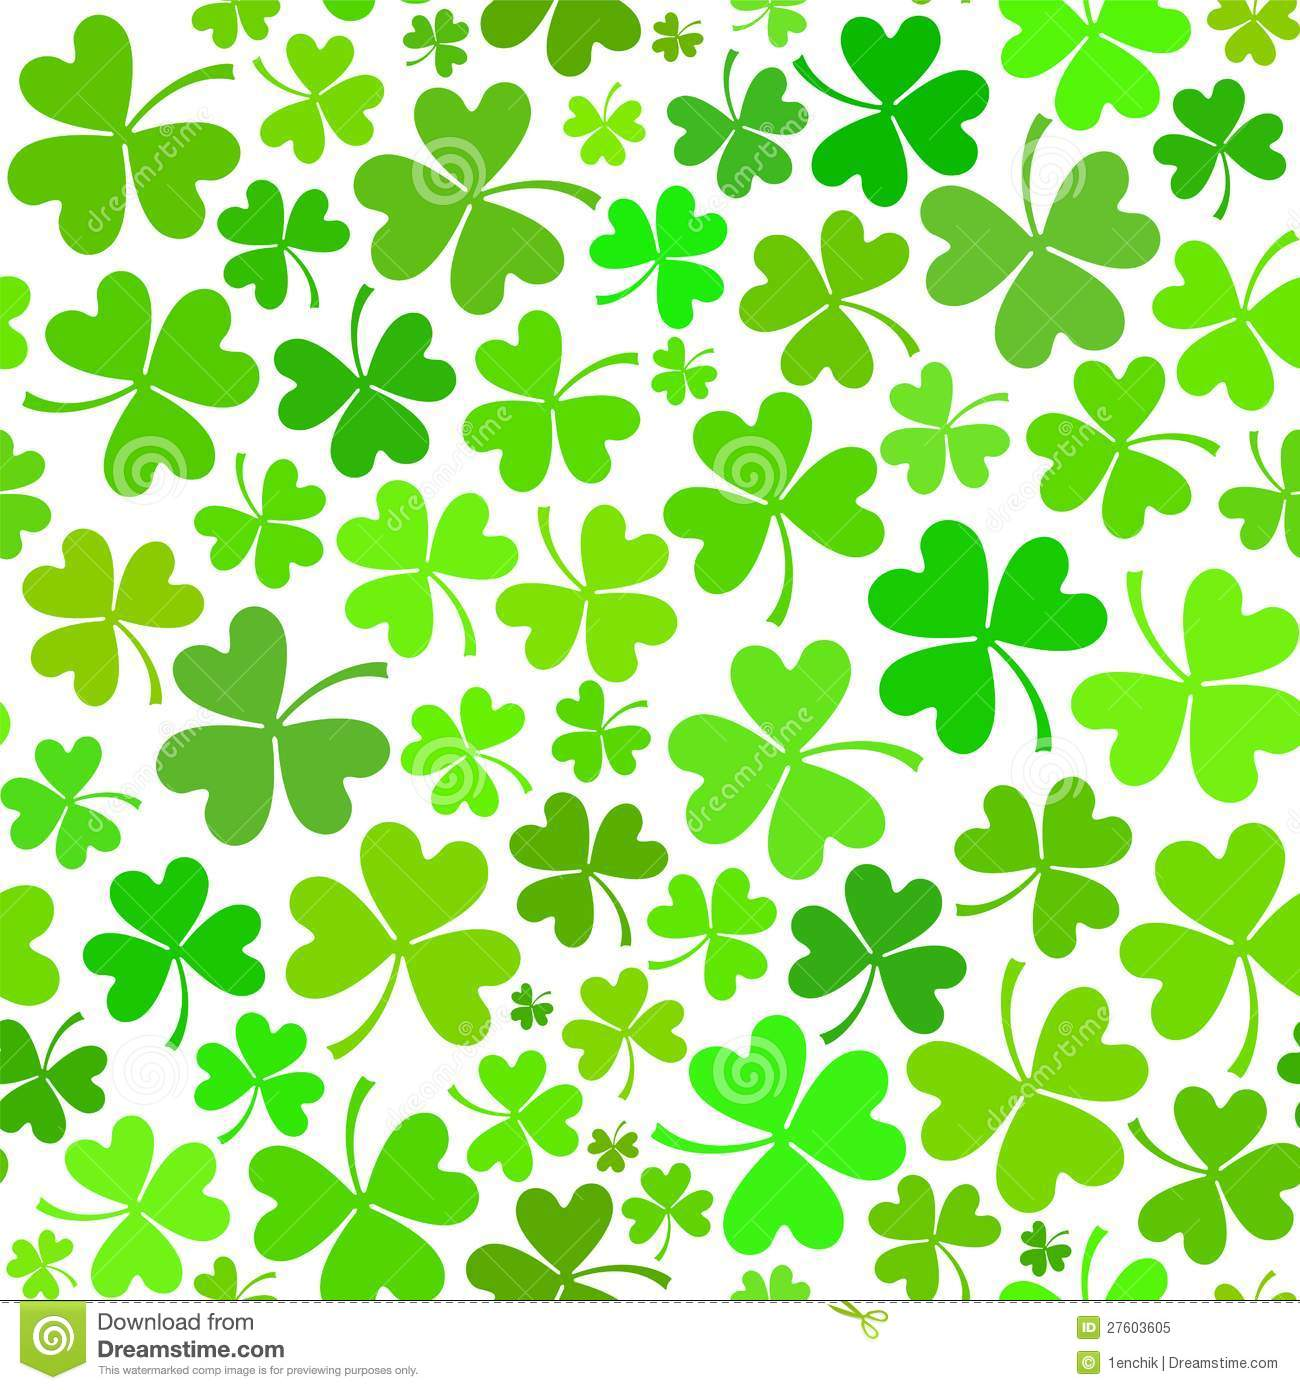 Light Green Seamless Clover Pattern Royalty Free Stock Photo - Image ...